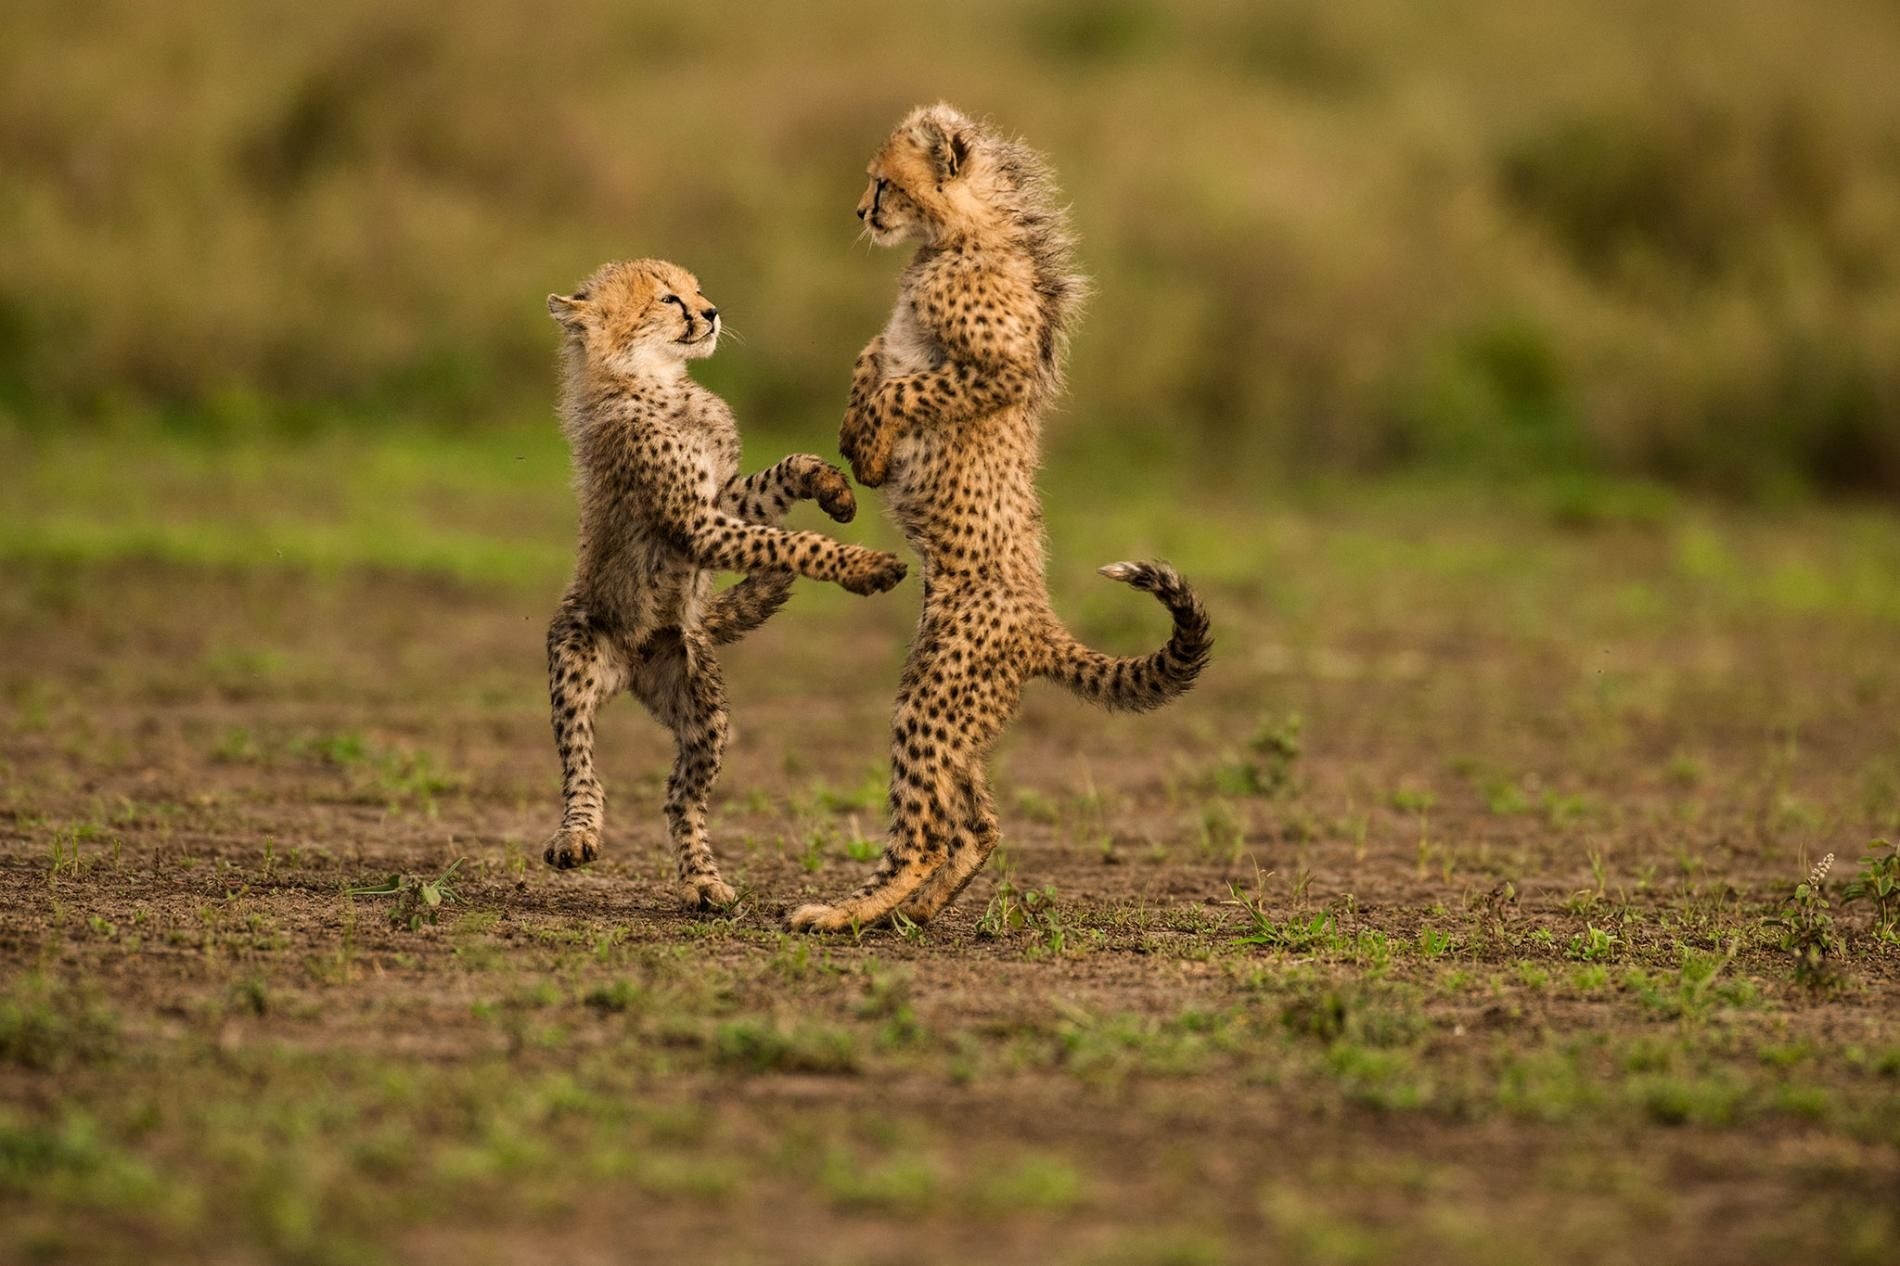 Striking Images From One Of The World S Best Wildlife Photographers National Geographic Animals Animals Animals Wild